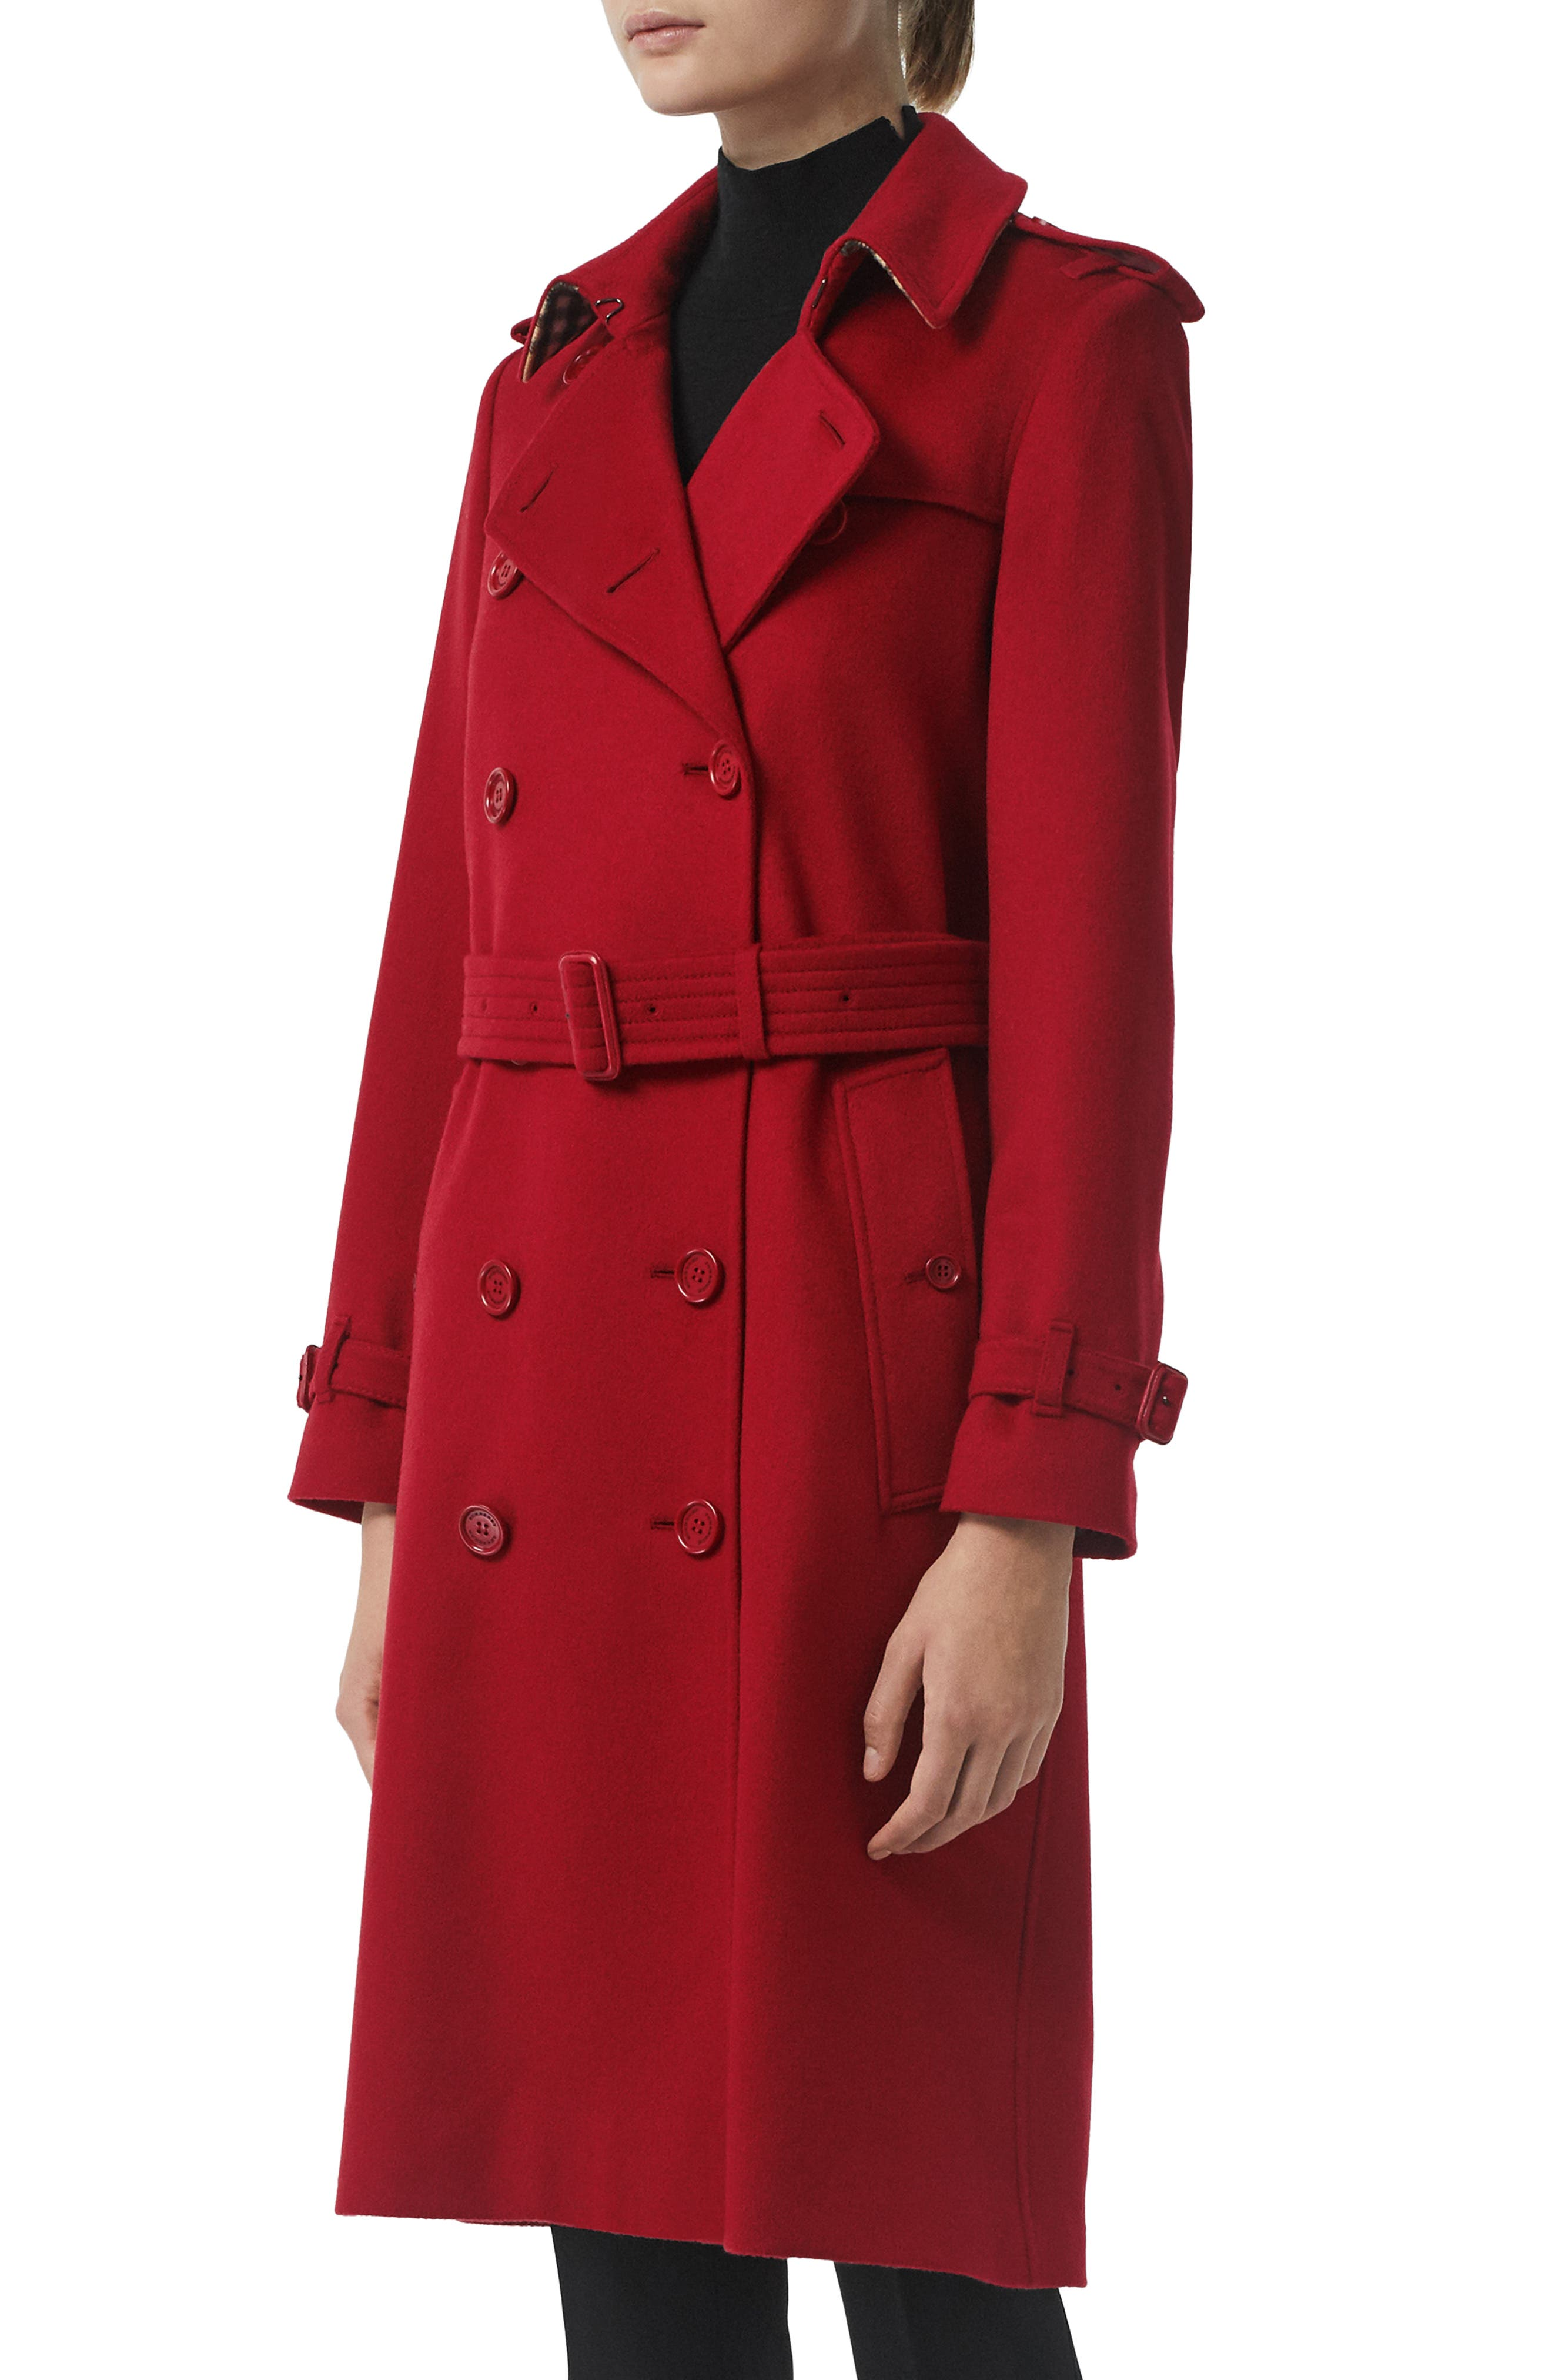 BURBERRY, Kensington Cashmere Trench Coat, Alternate thumbnail 3, color, PARADE RED